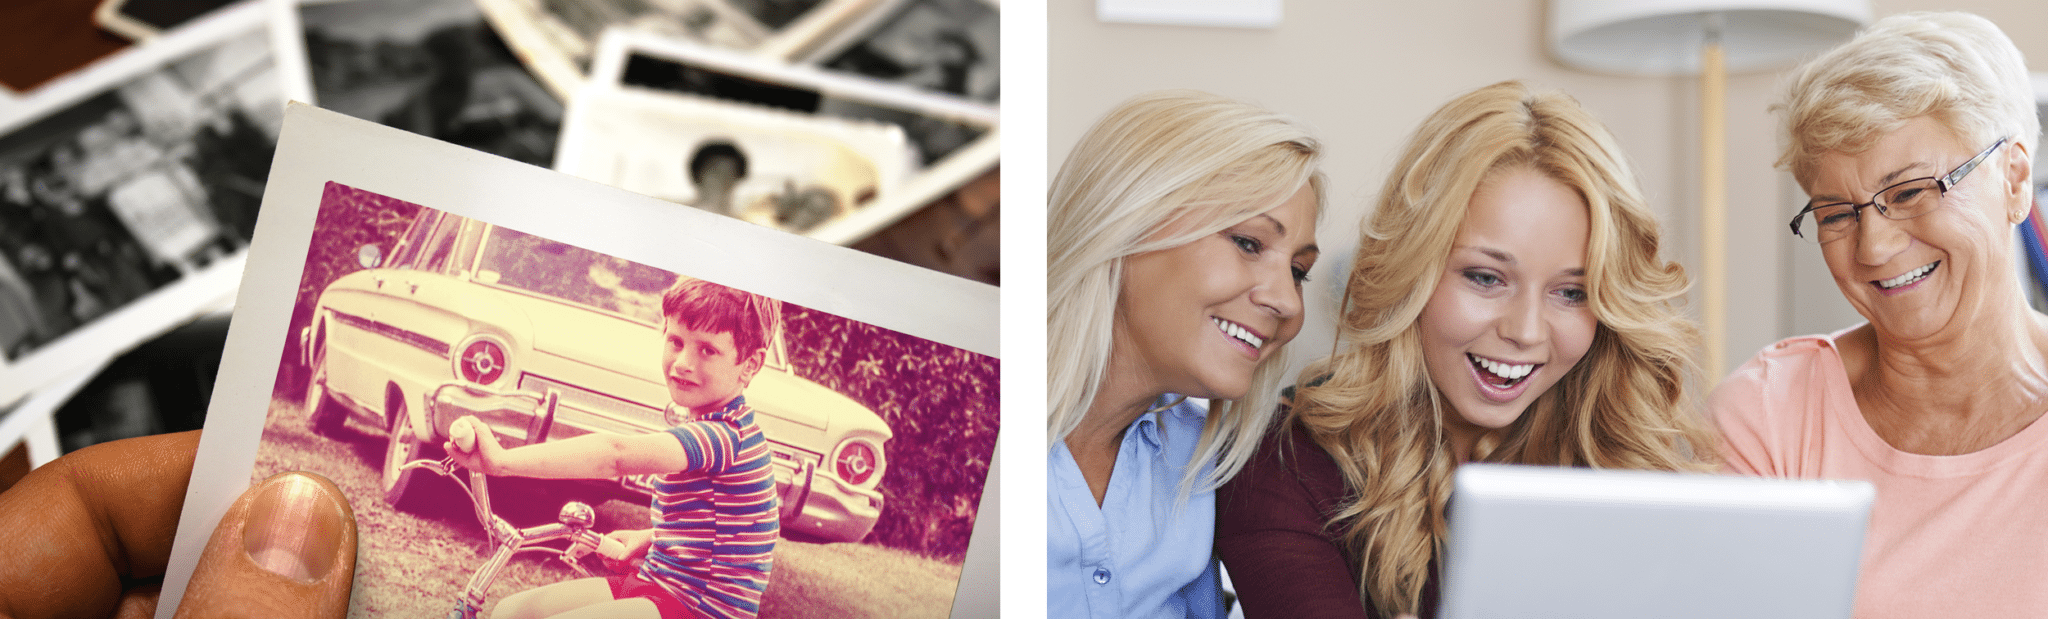 Photo Scanning Service Tyler TX